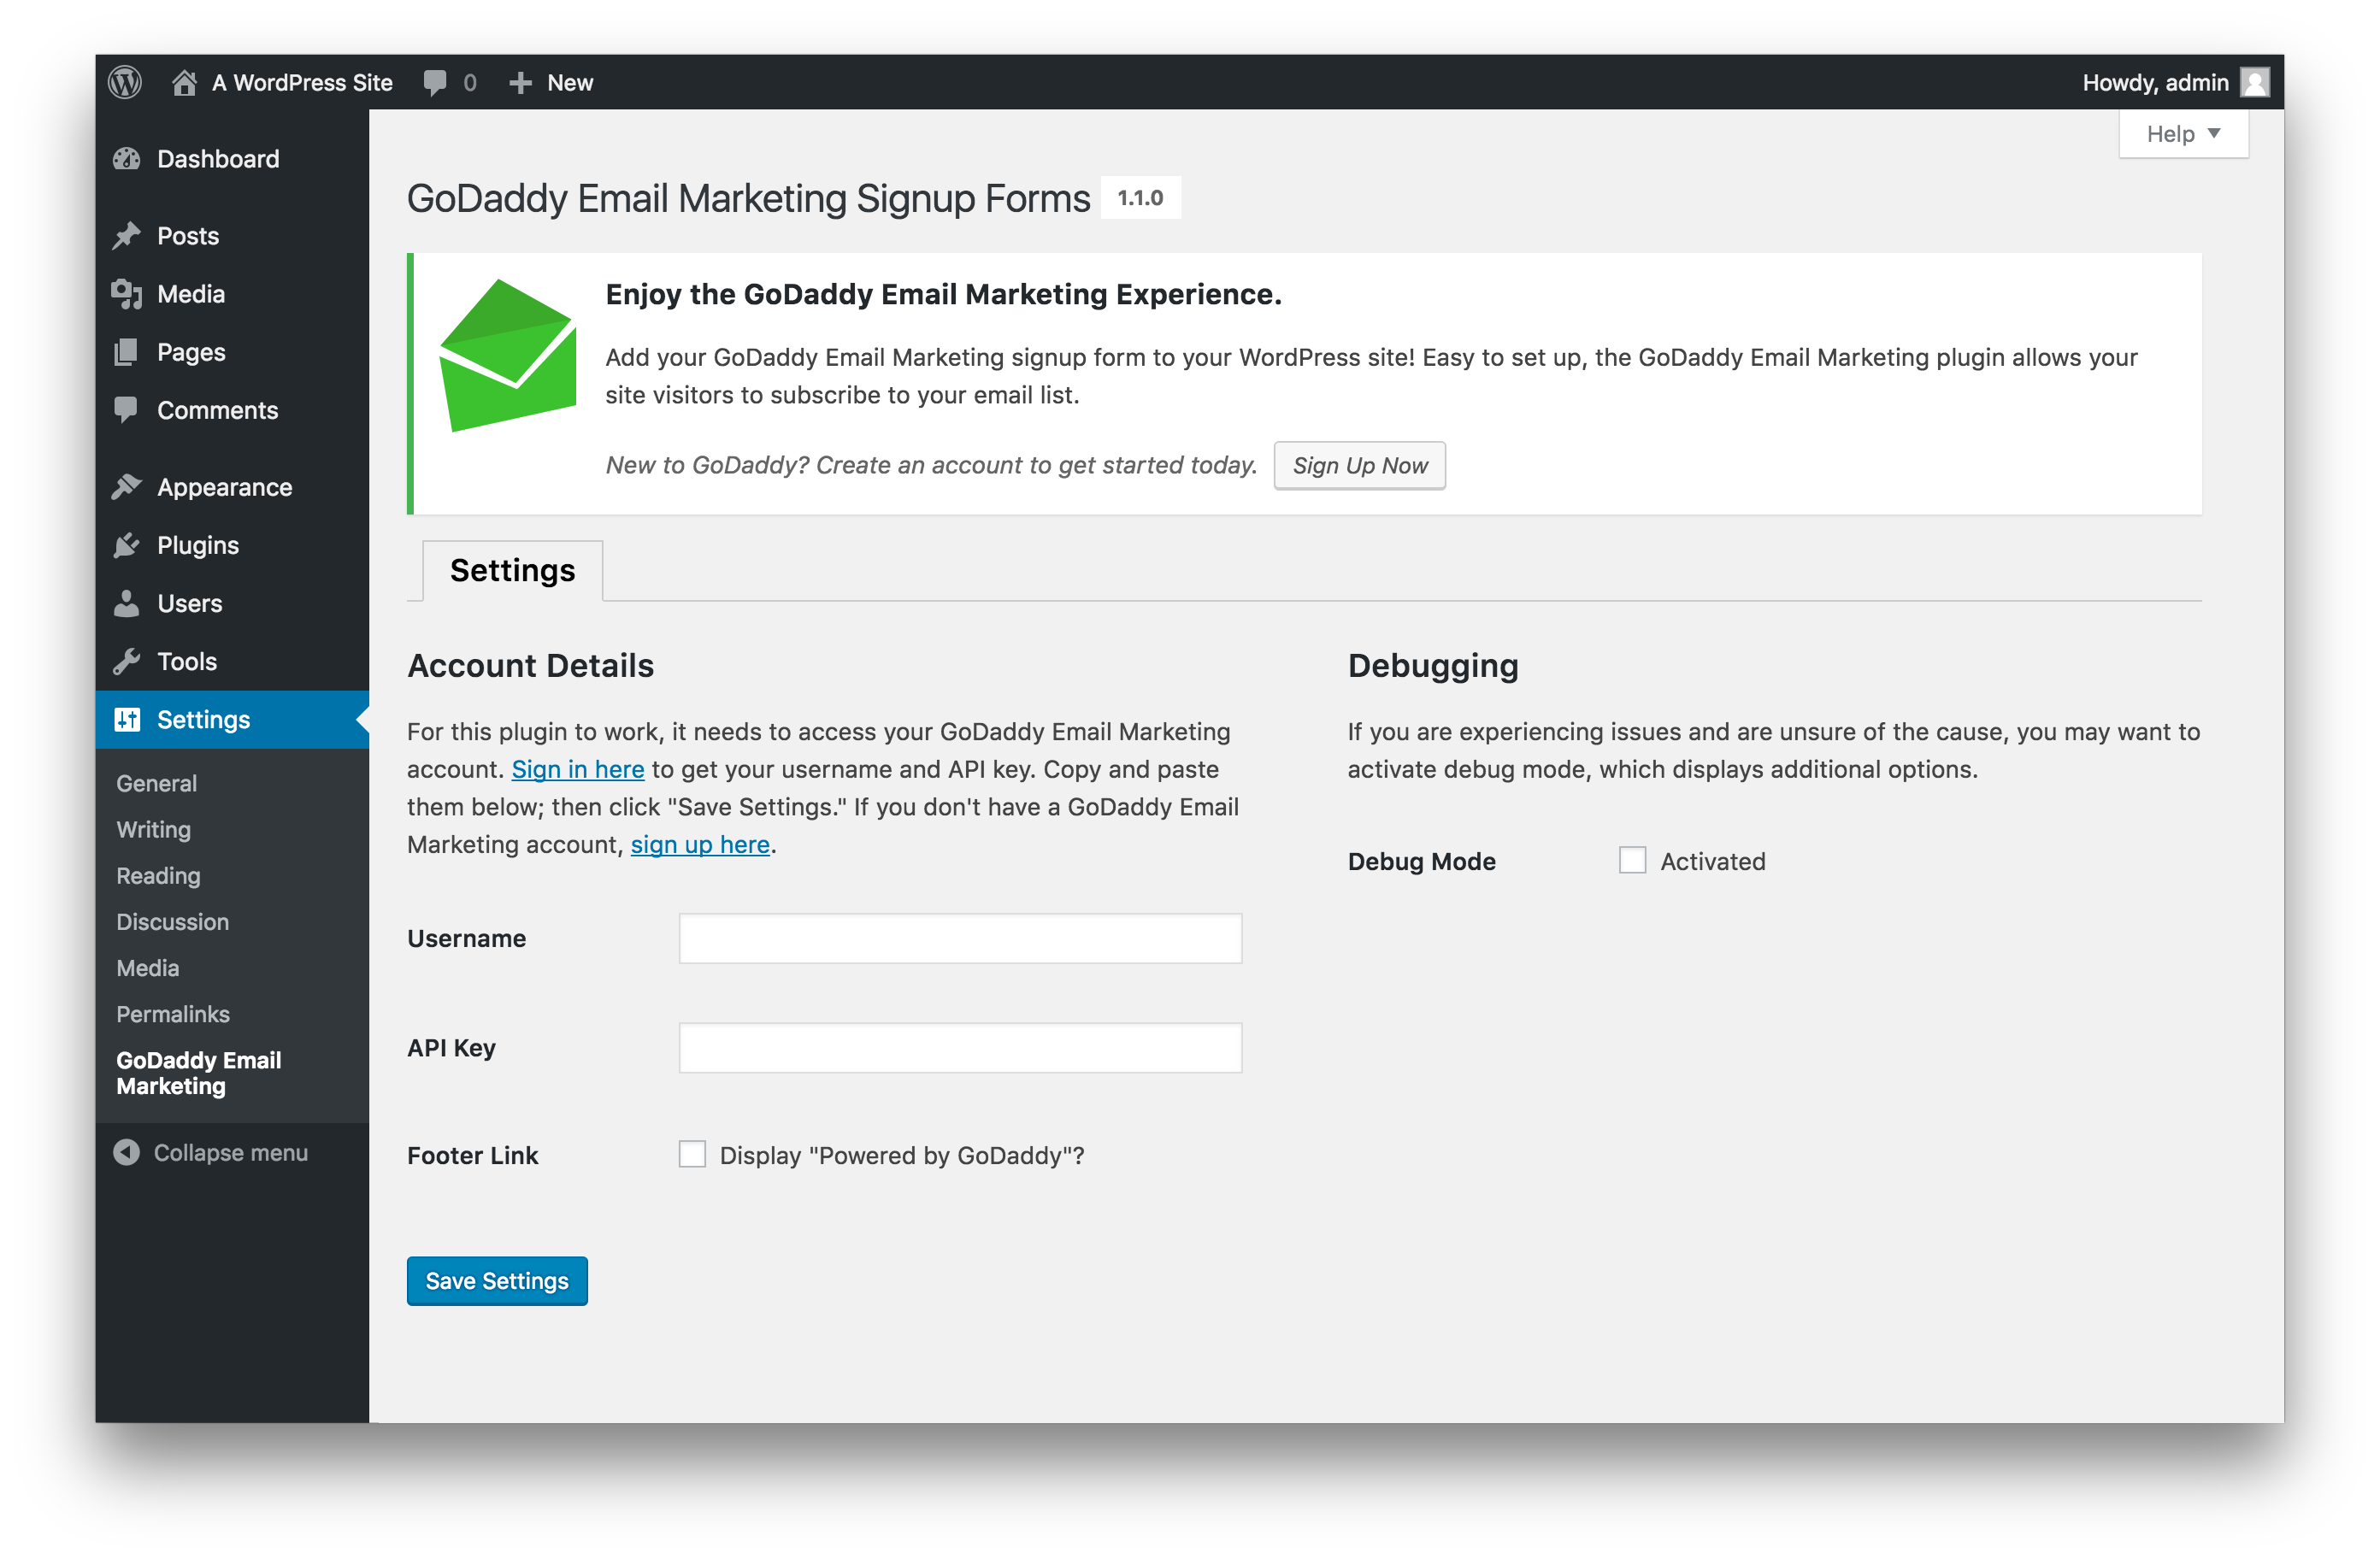 GoDaddy Email Marketing — WordPress Plugins